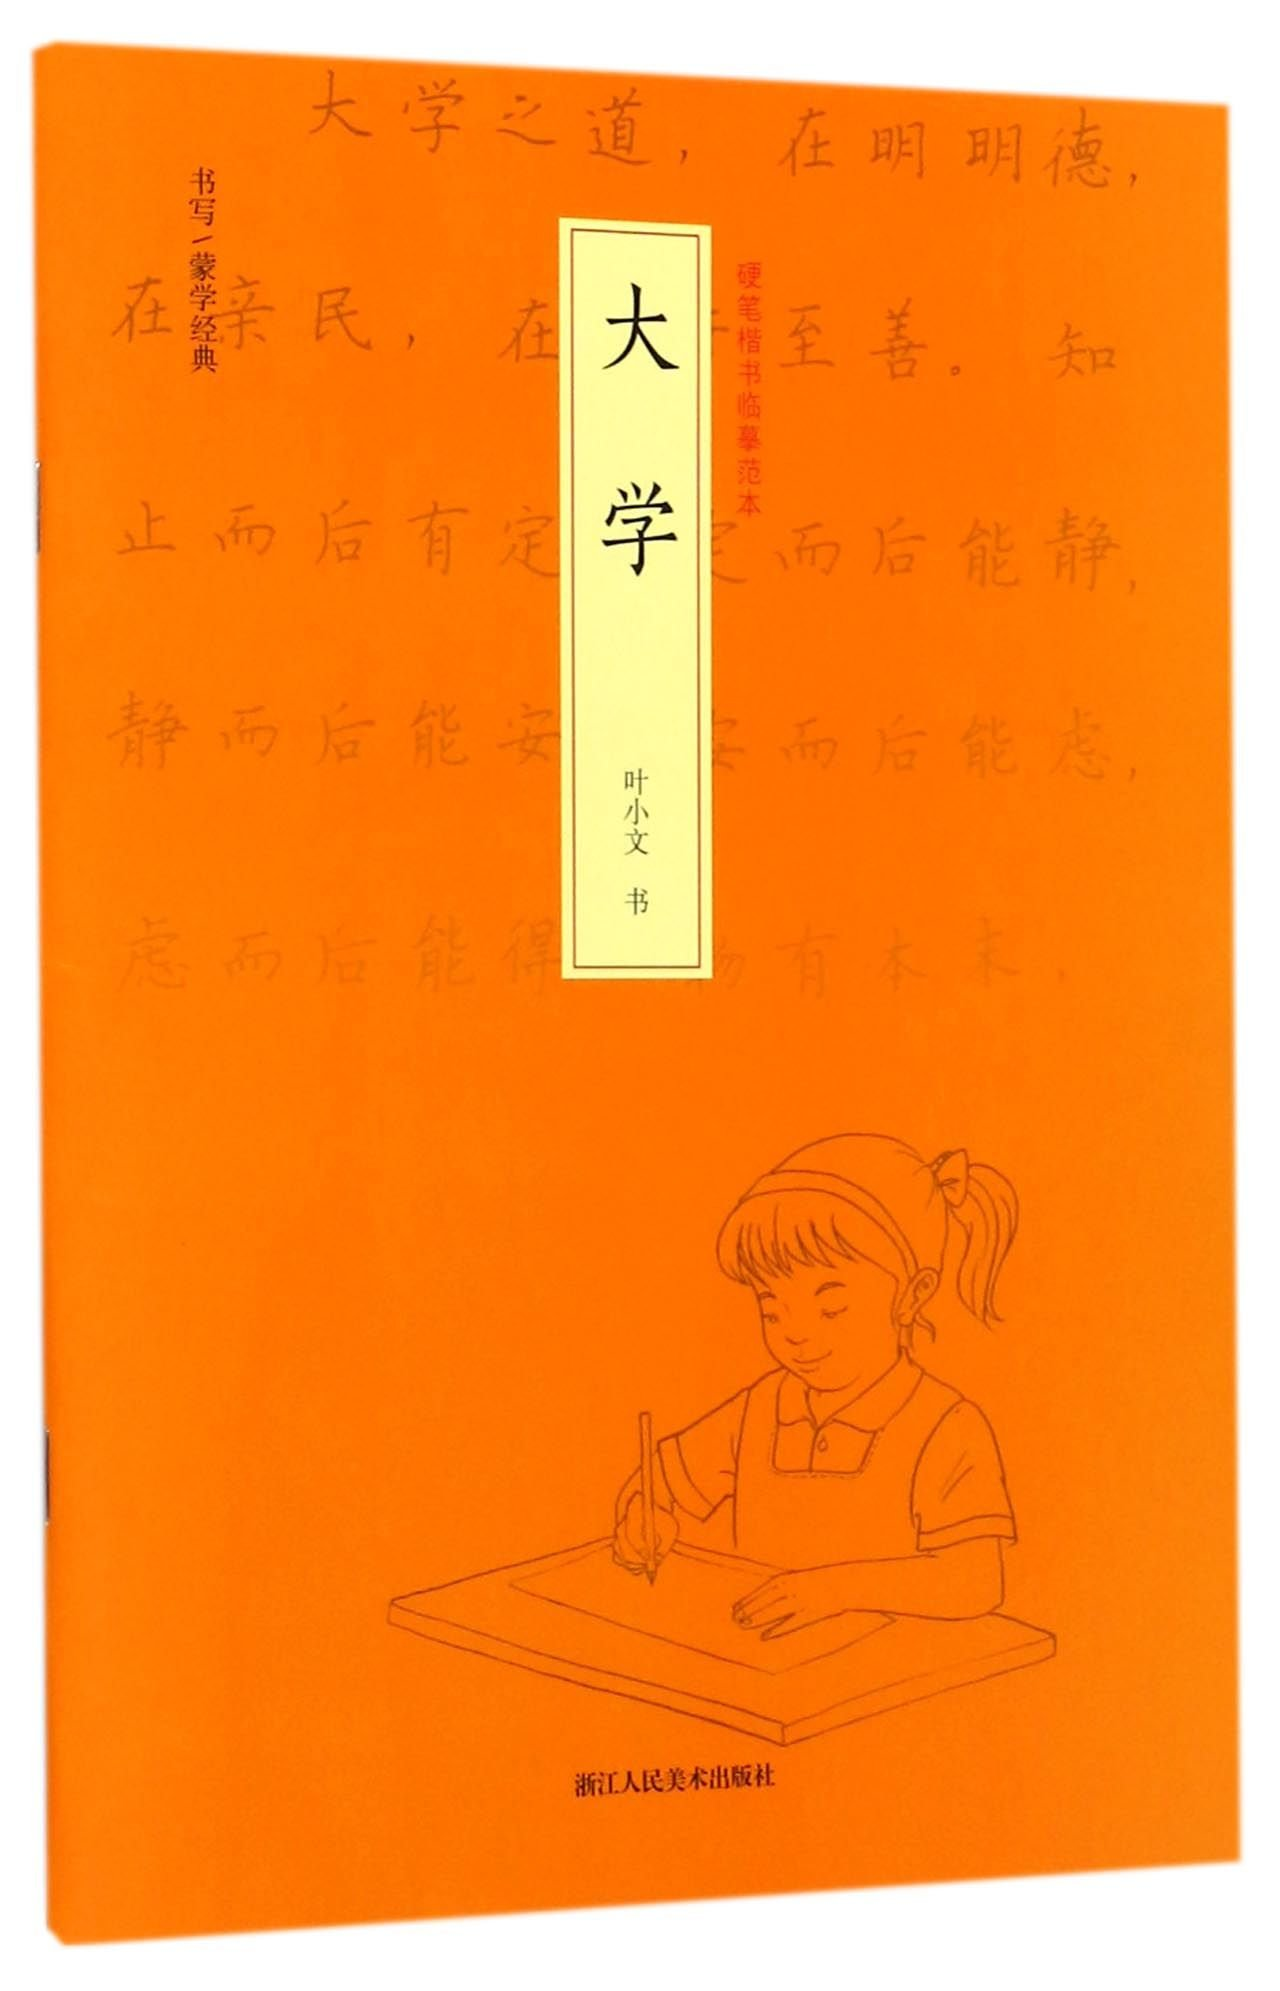 Download The Great Learning - Facsimile Model for Regular Script Practice with Hard-tipped Pen (Chinese Edition) ebook